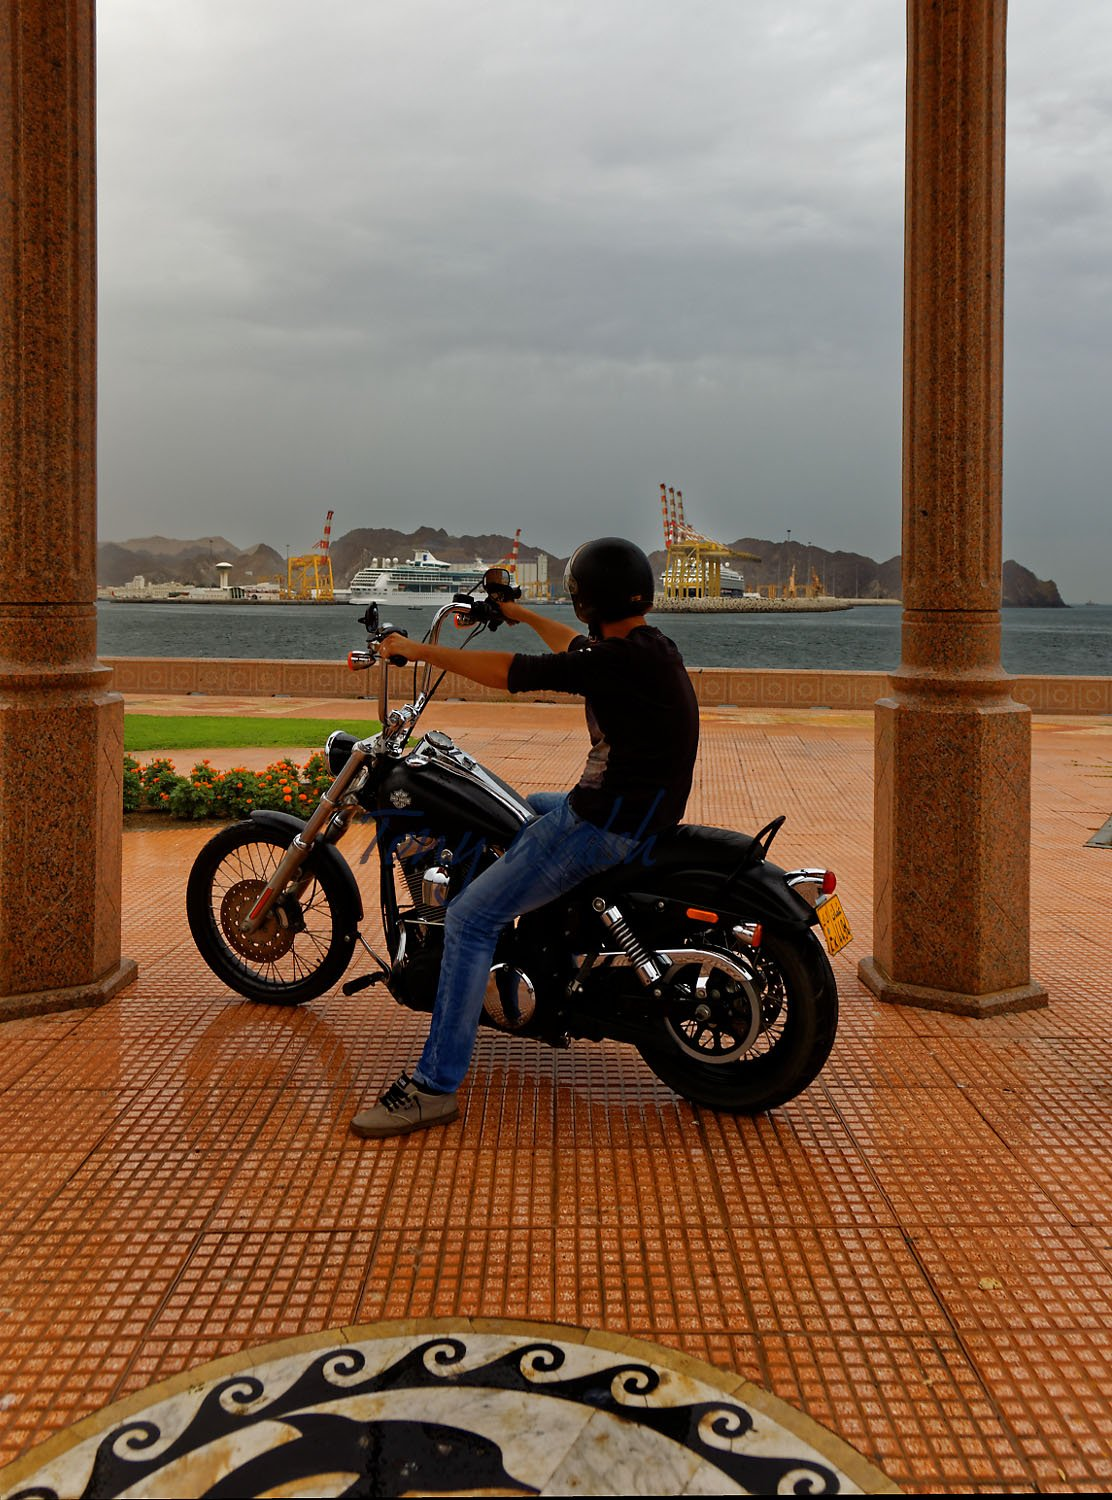 Yelmer on his Harley in Muttrah